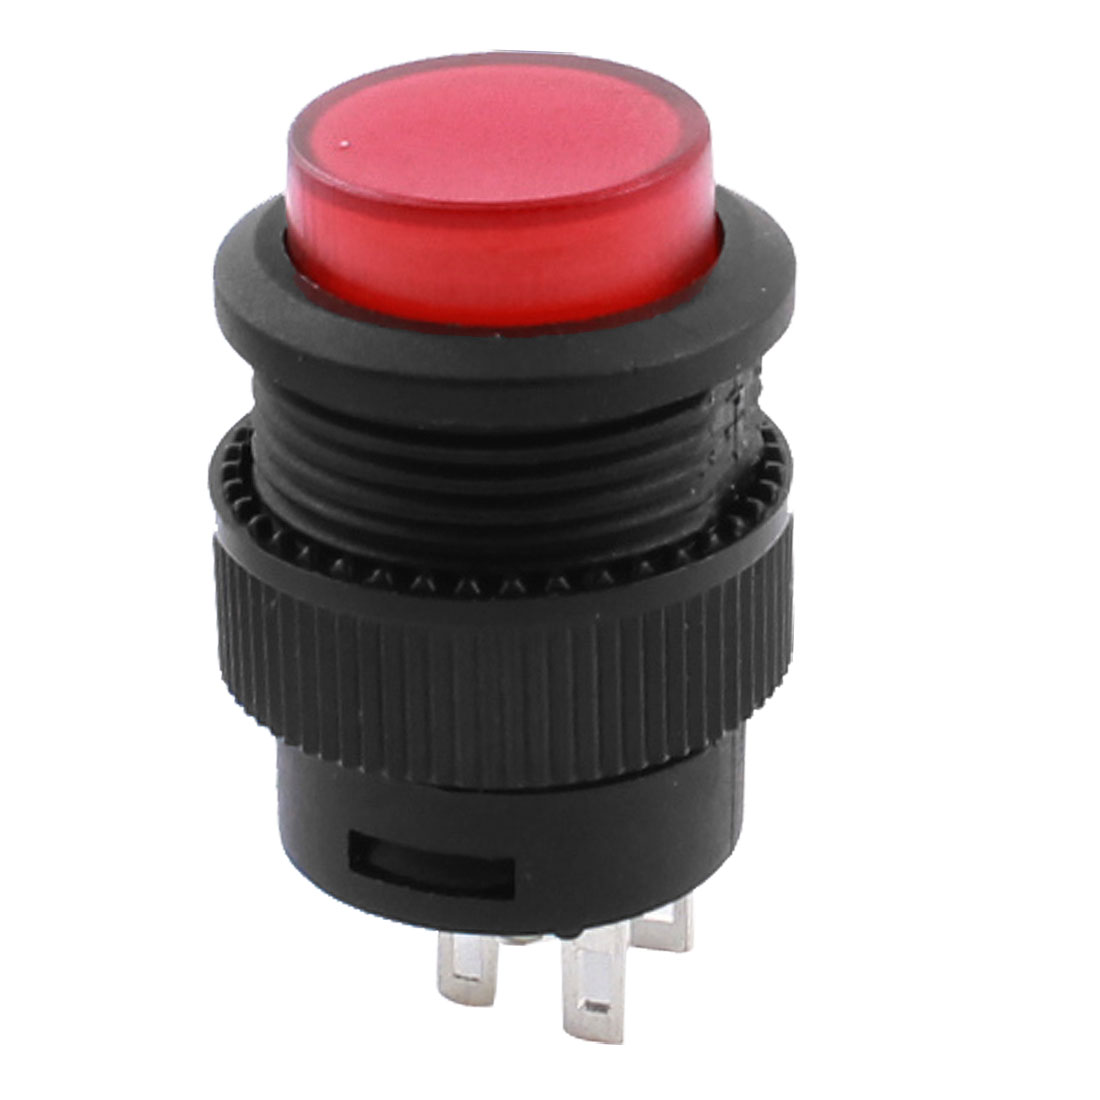 Red Light 4Pin 15mm Thread Mounting Black SPST Momentary Push Button Switch AC250V 3A